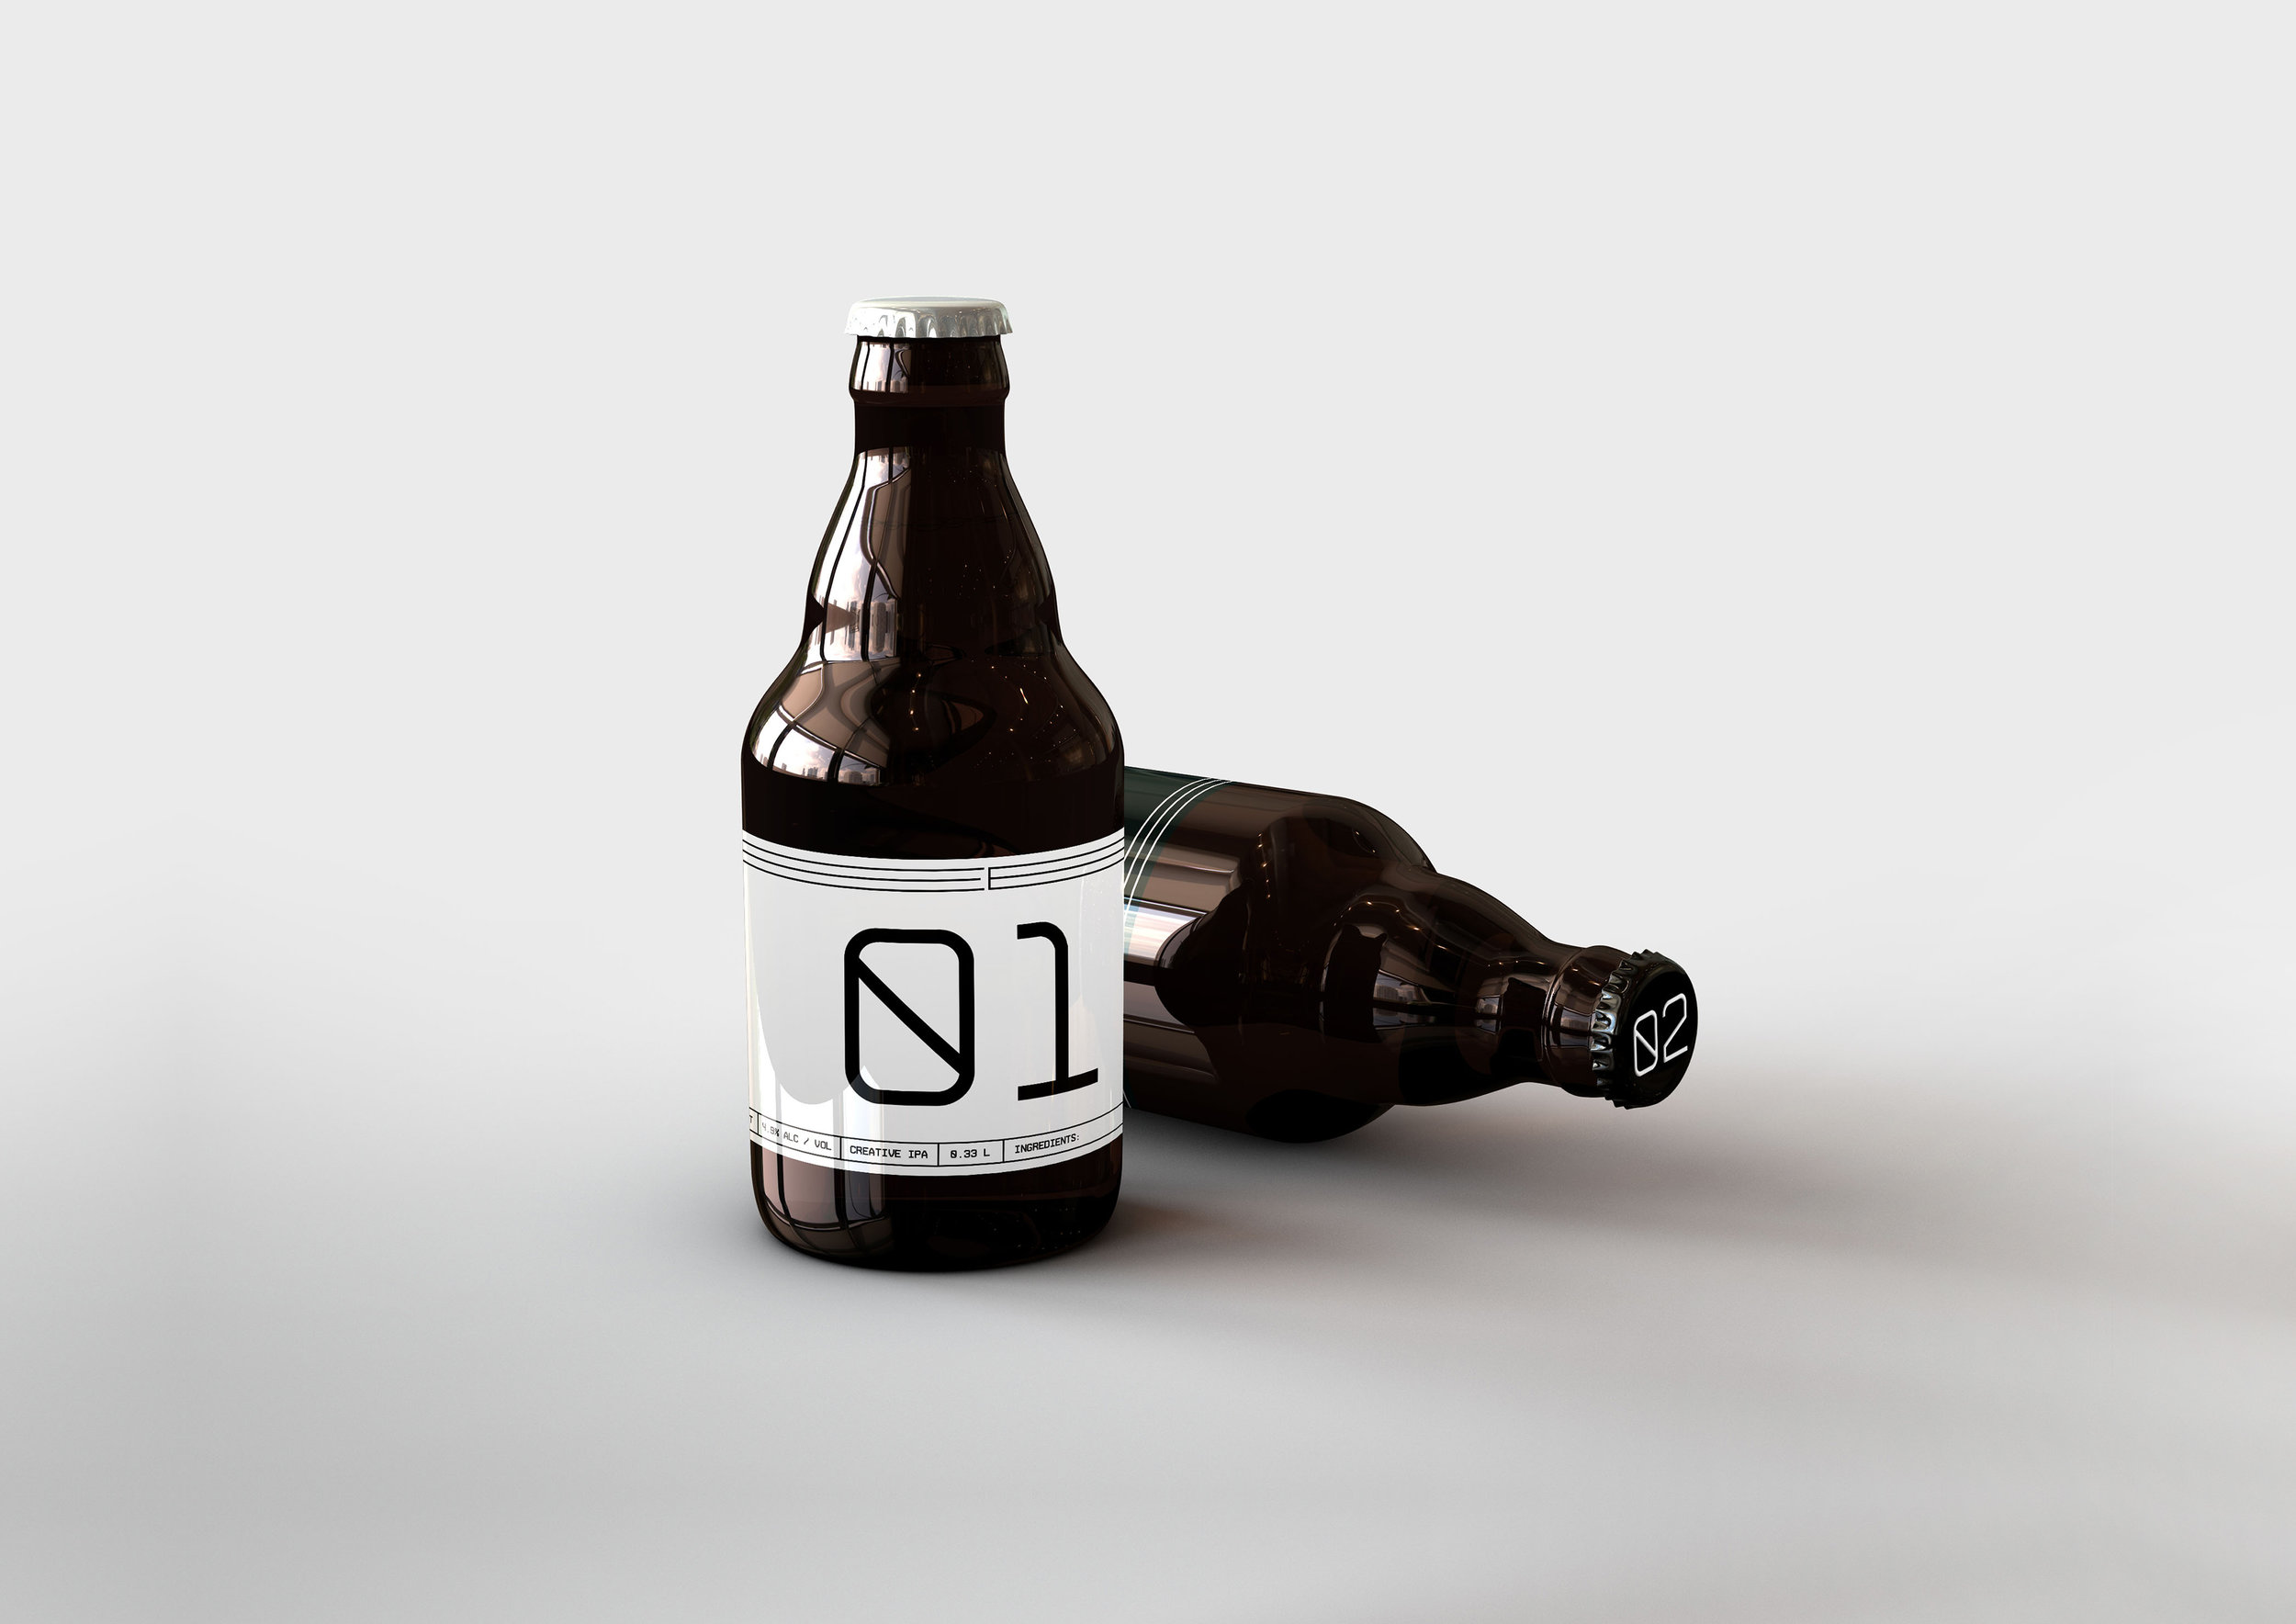 Student Promotional Minimal Beer Branding and Packaging Design / World Brand & Packaging Design Society